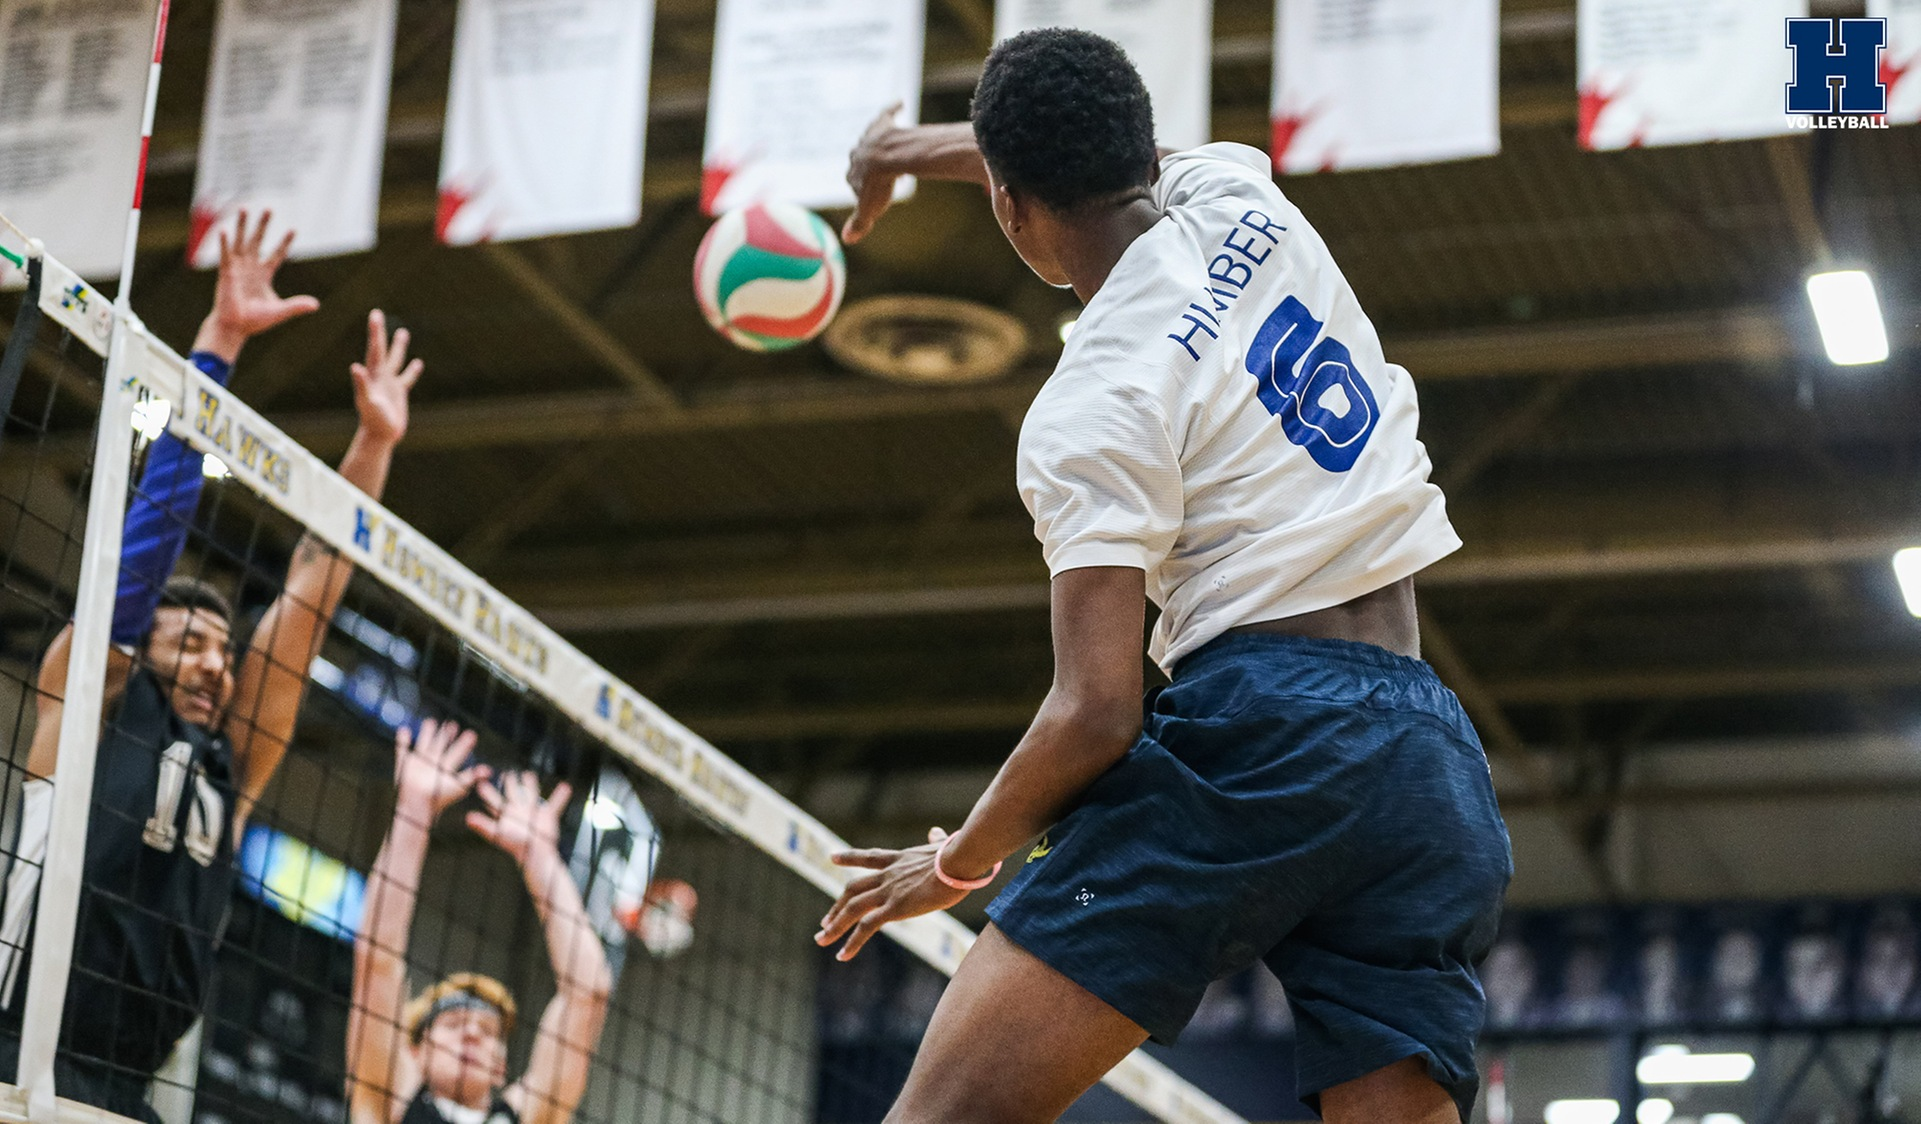 No. 1 Men's Volleyball Downs Boréal, 3-0